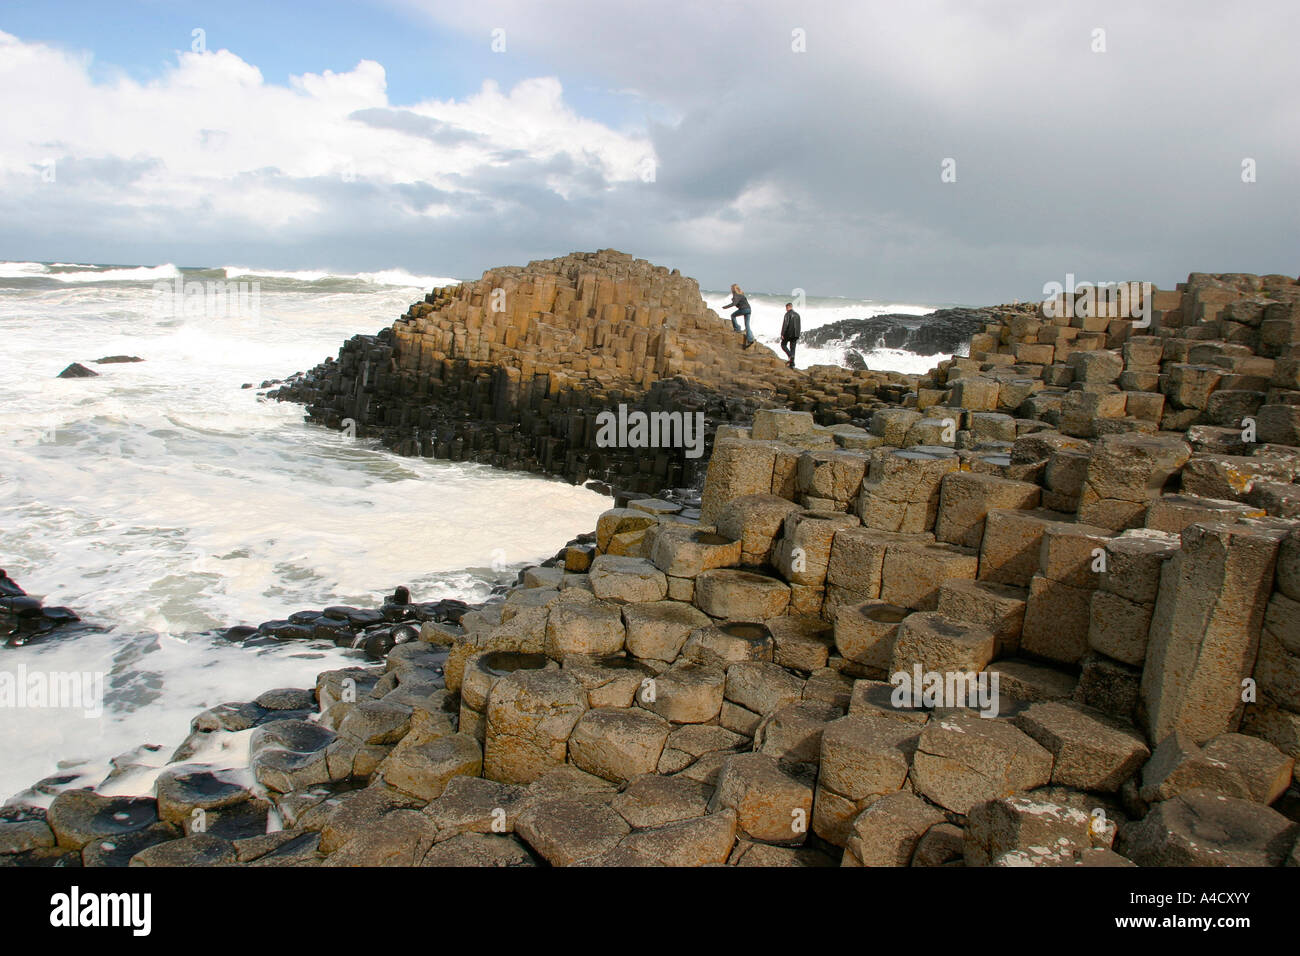 County Antrim Giants Causeway couple climbing on rocks surrounded by heavy surf Stock Photo